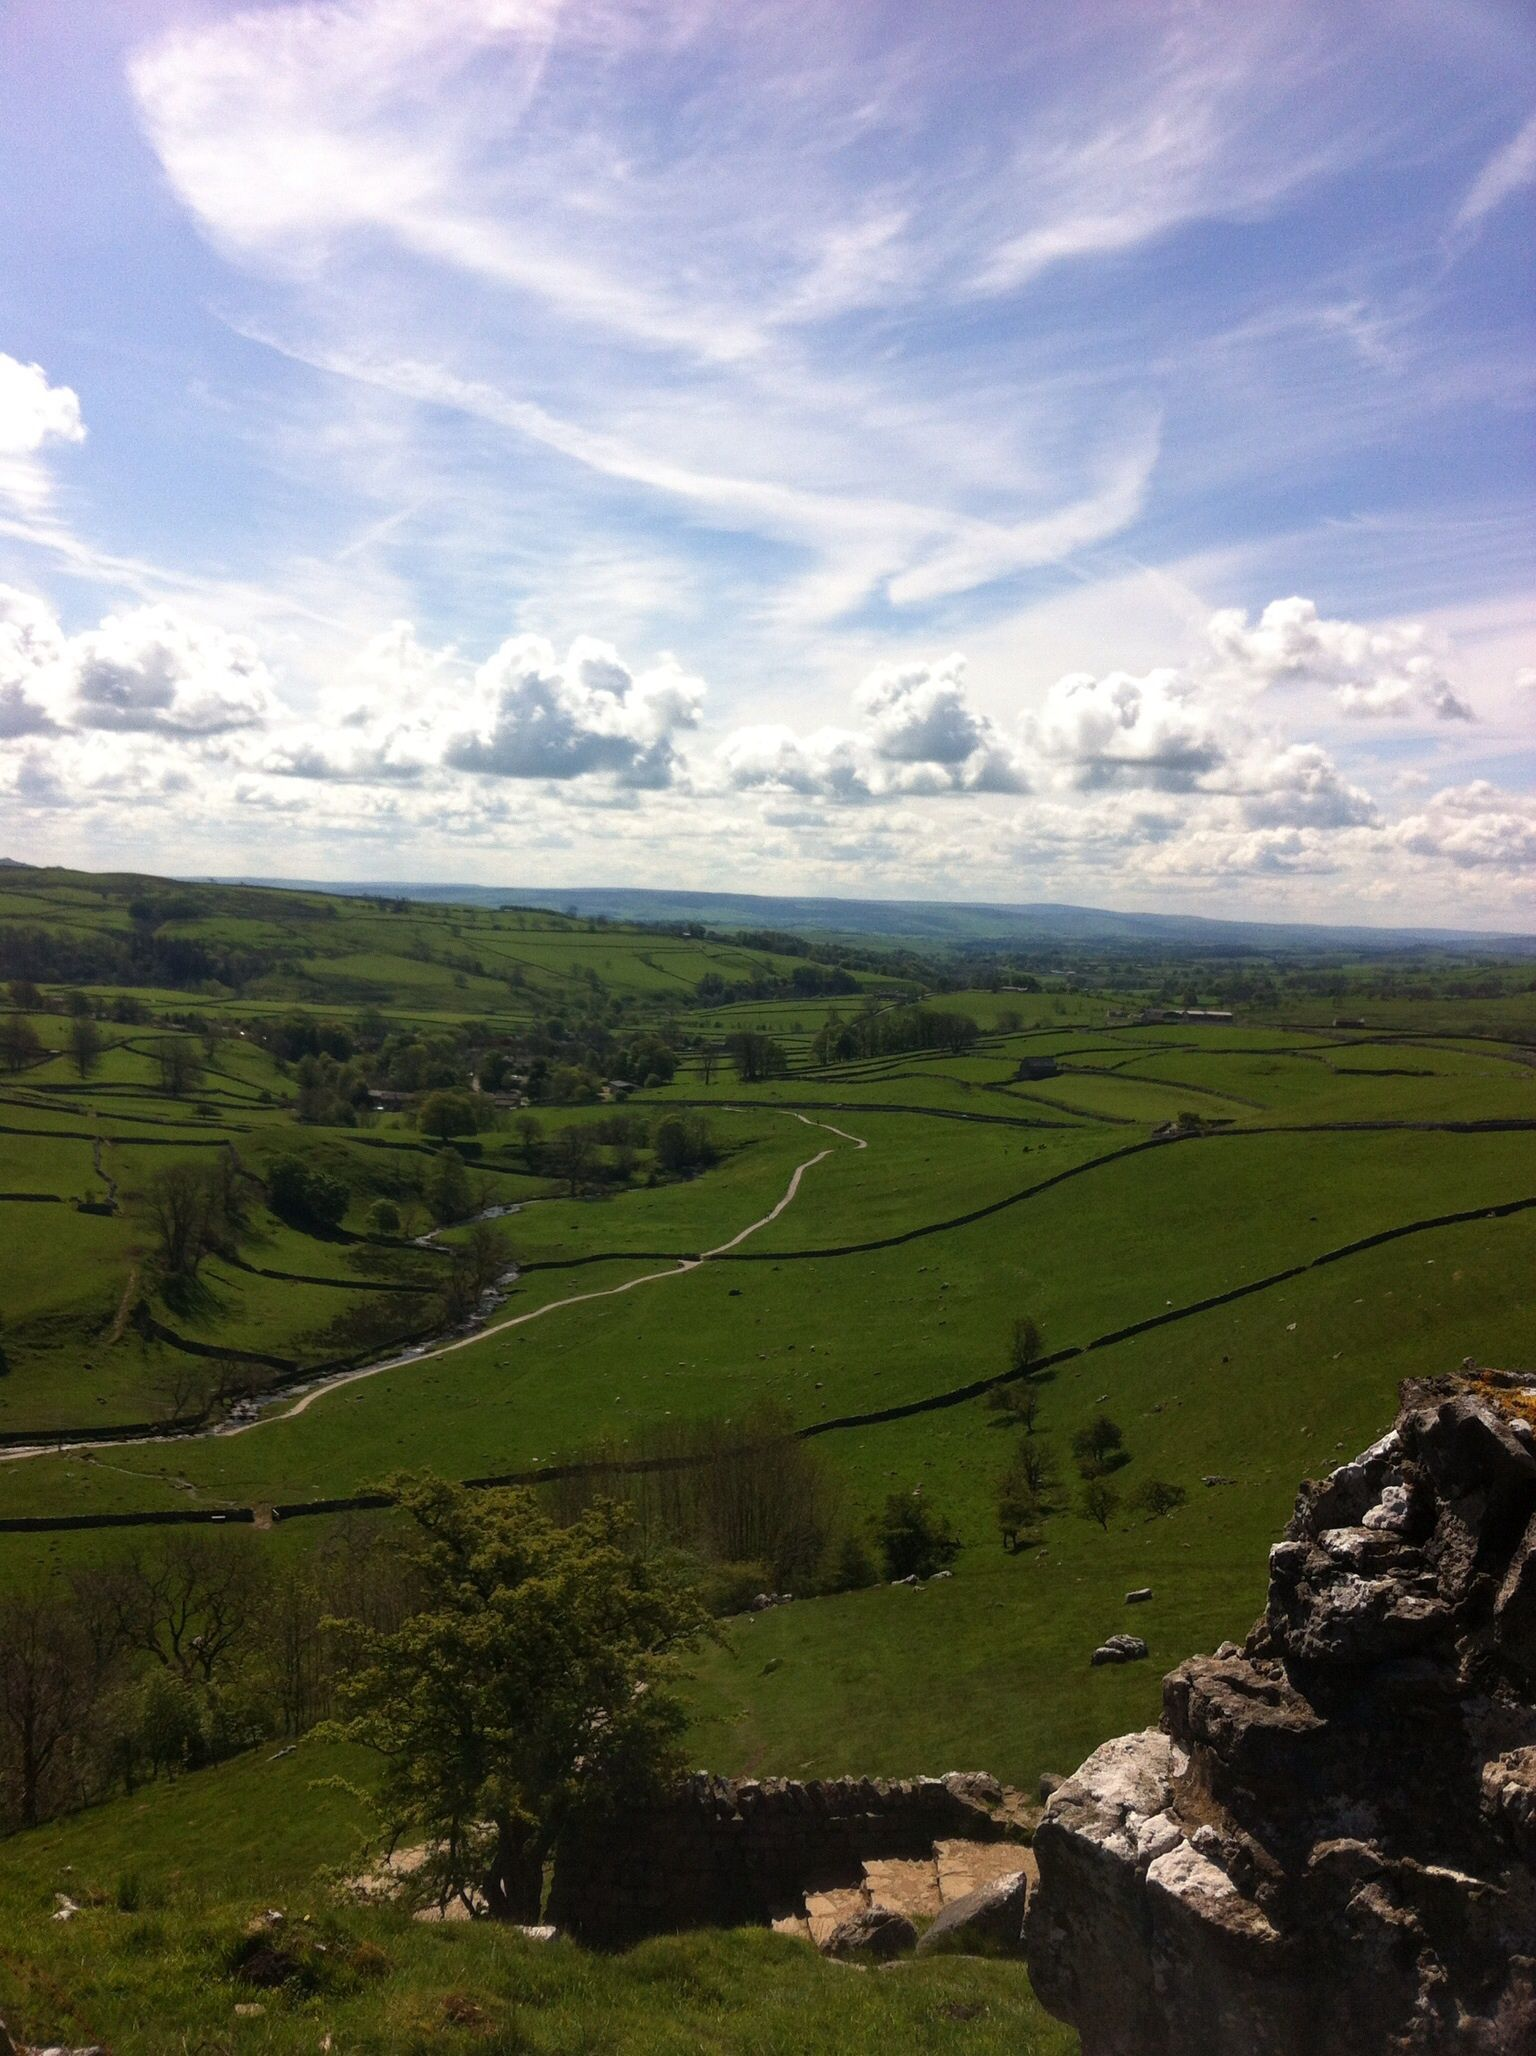 The view from Malham Cove in the Yorkshire Dales.